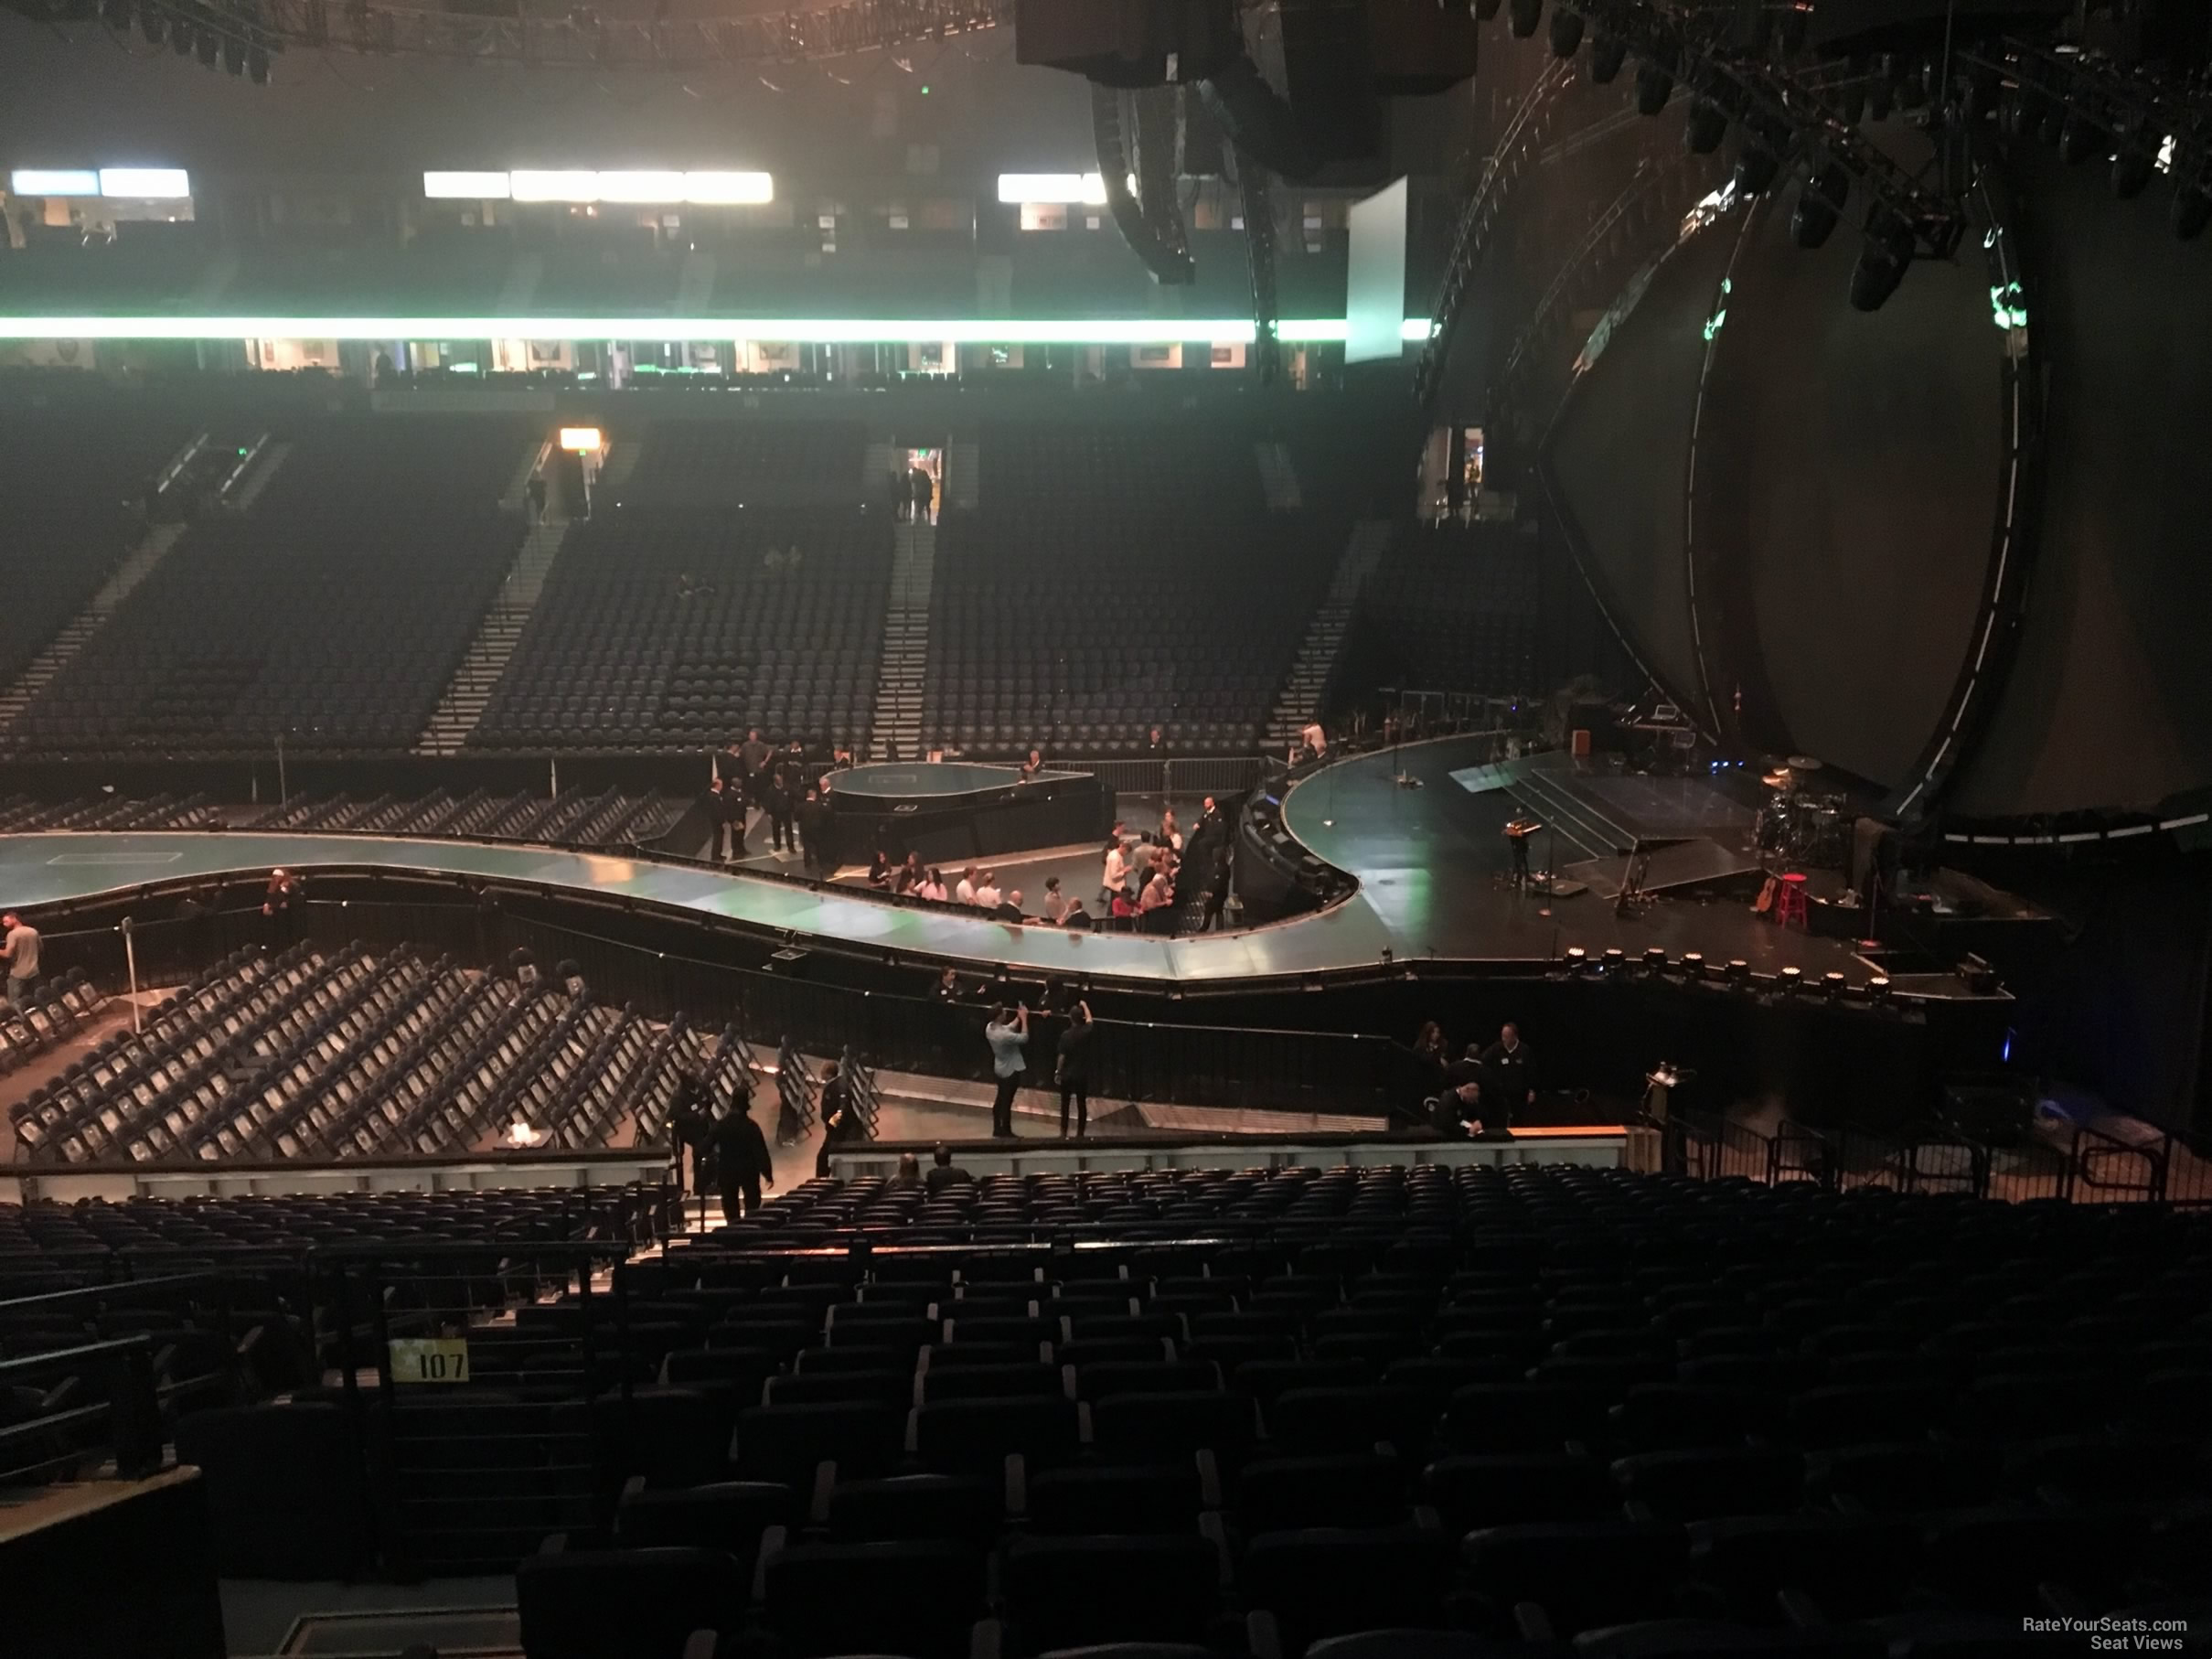 TD Garden arena seat & row numbers detailed seating chart Bridgestone arena seating pictures